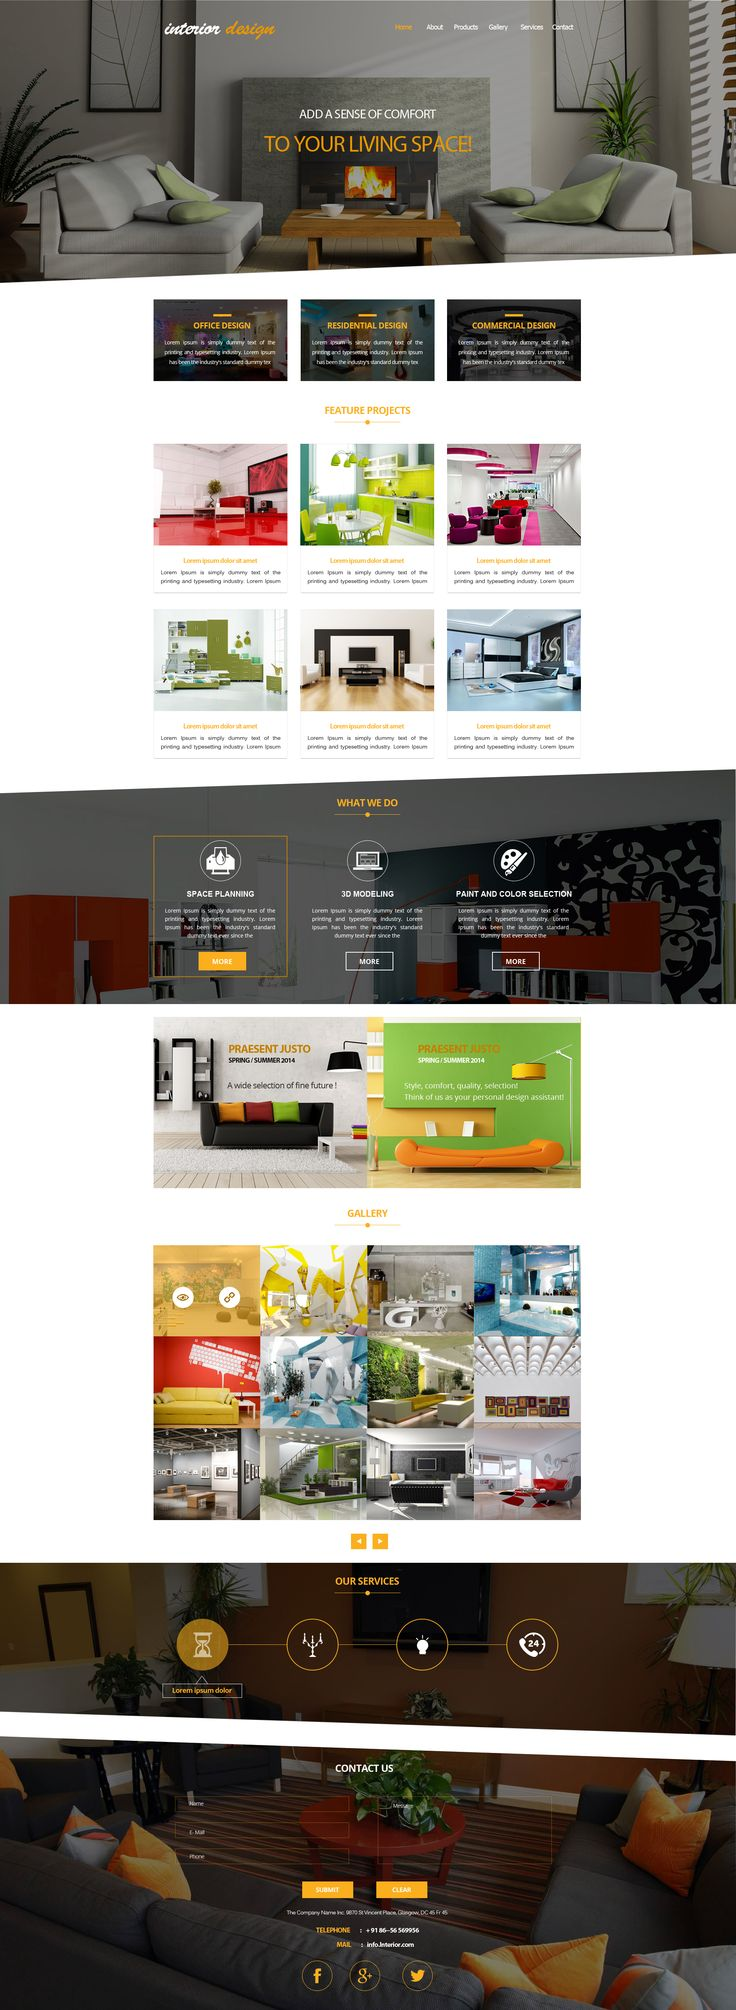 Sell365s Interior Design Template One Of The Best Website Builder In India And